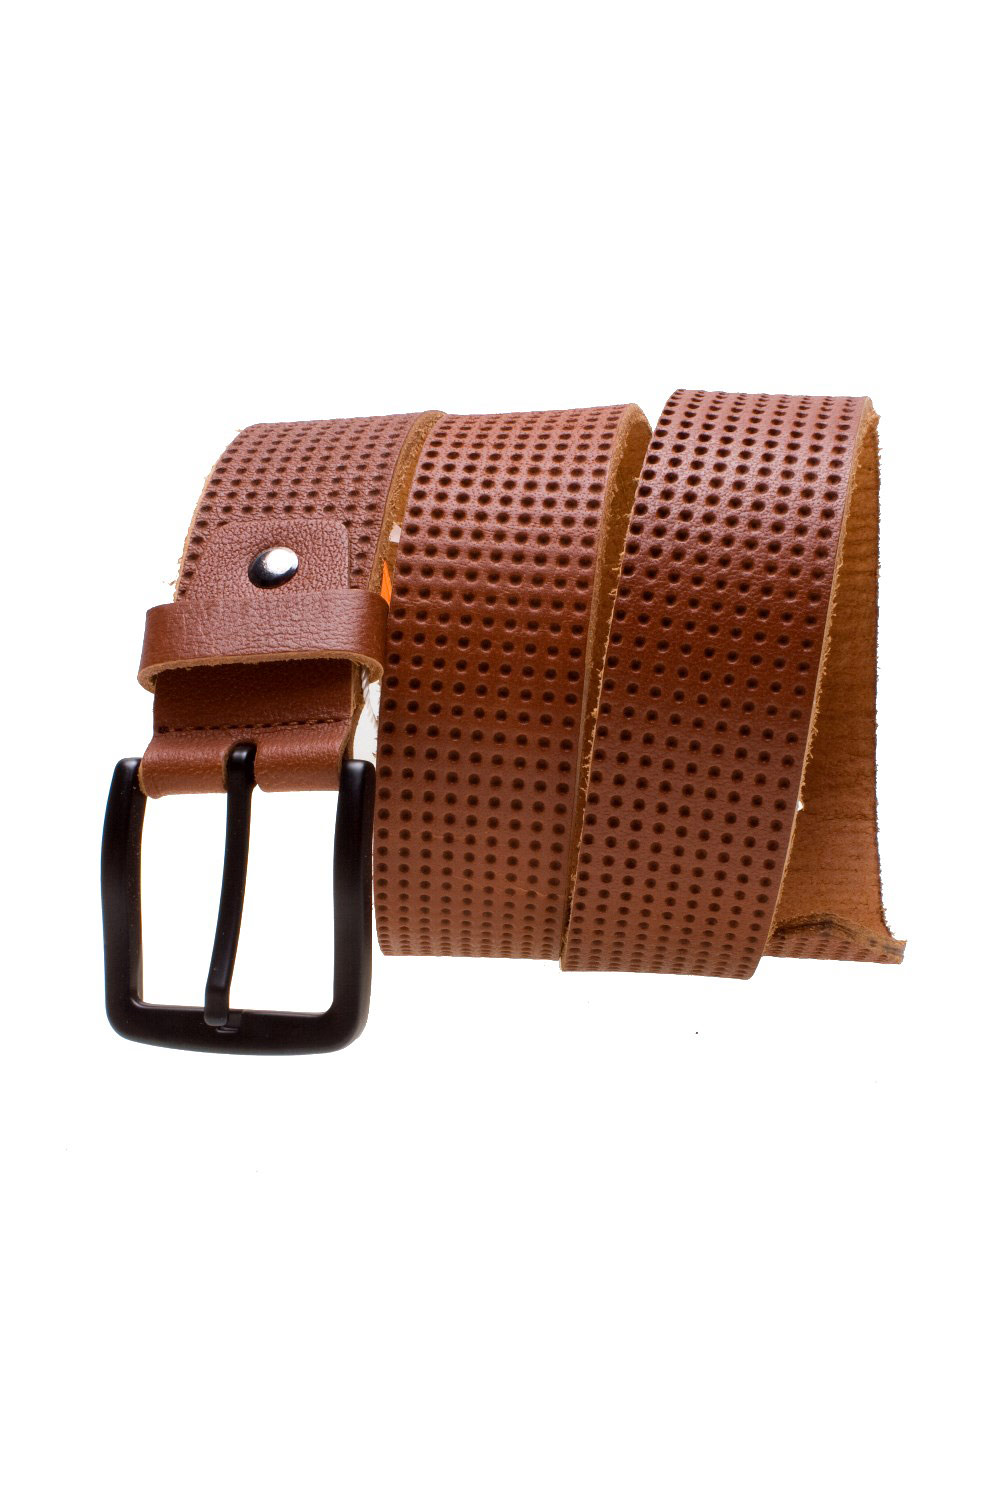 REBELT belt at oboy.com